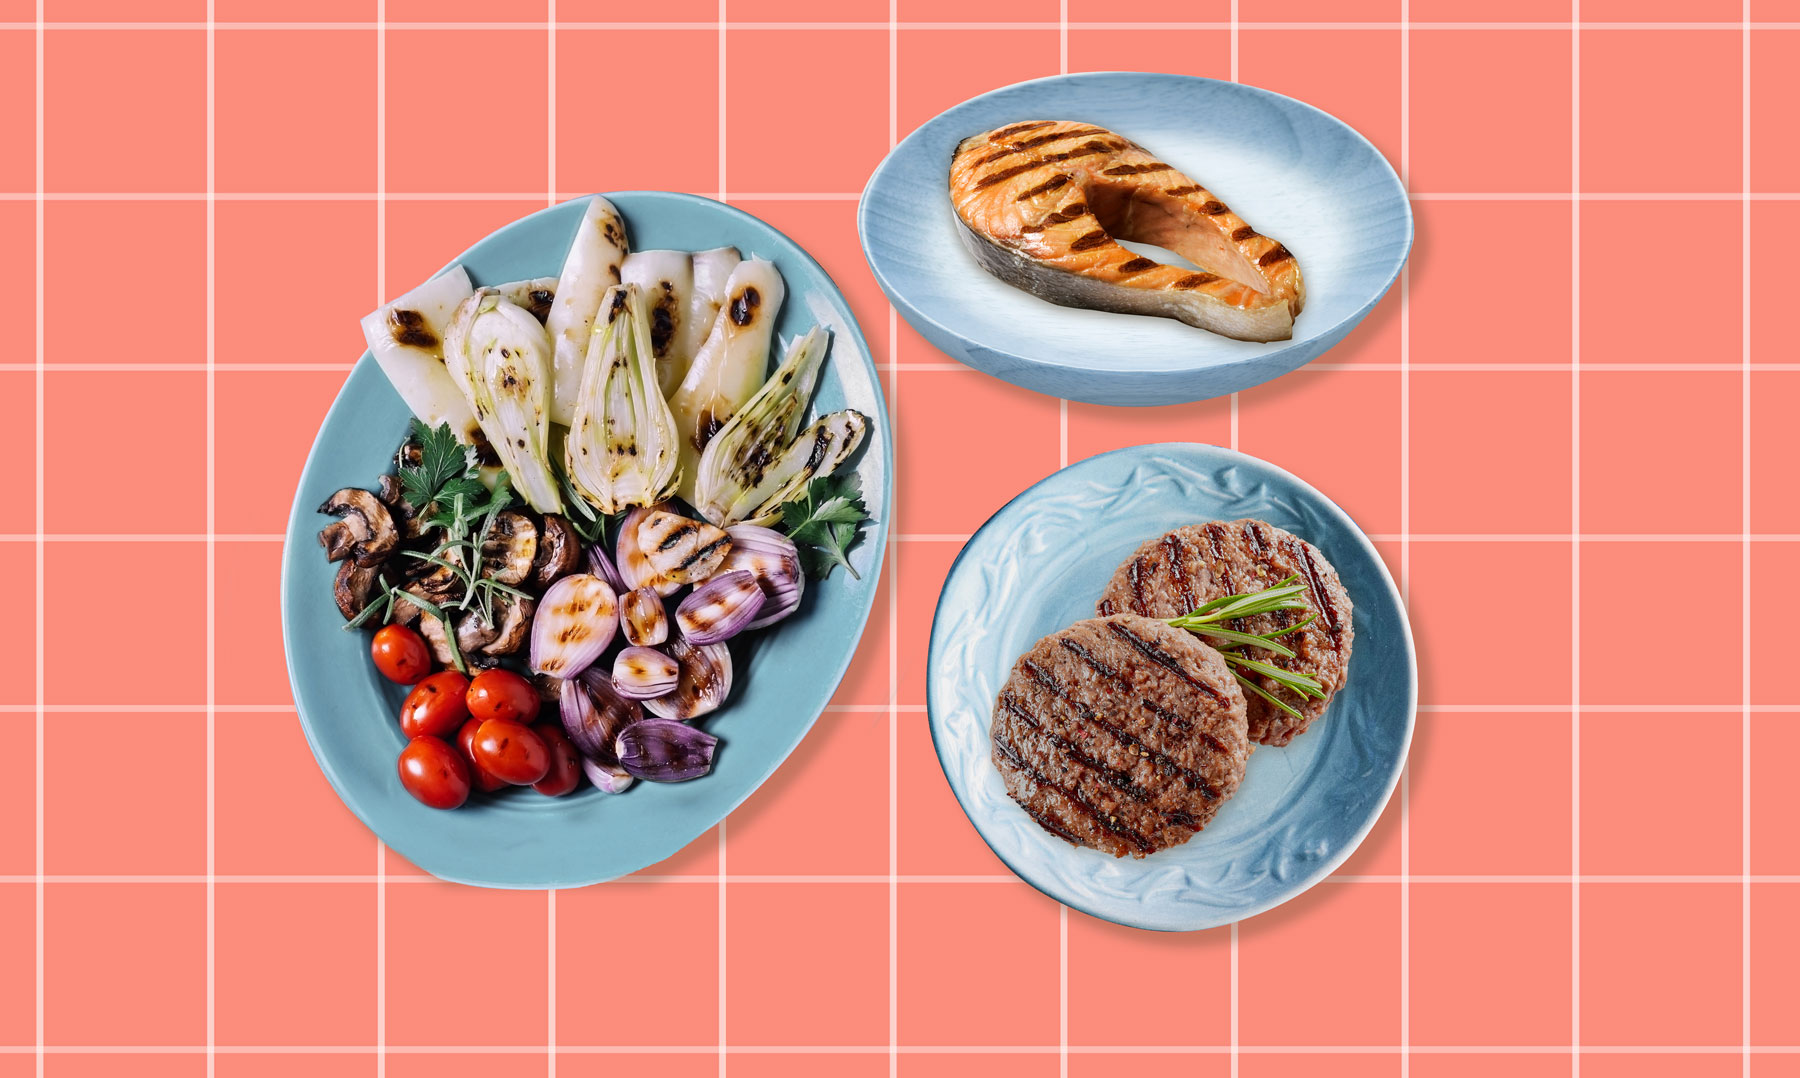 How to grill - grill times for chicken, steak, shrimp, burgers, and more